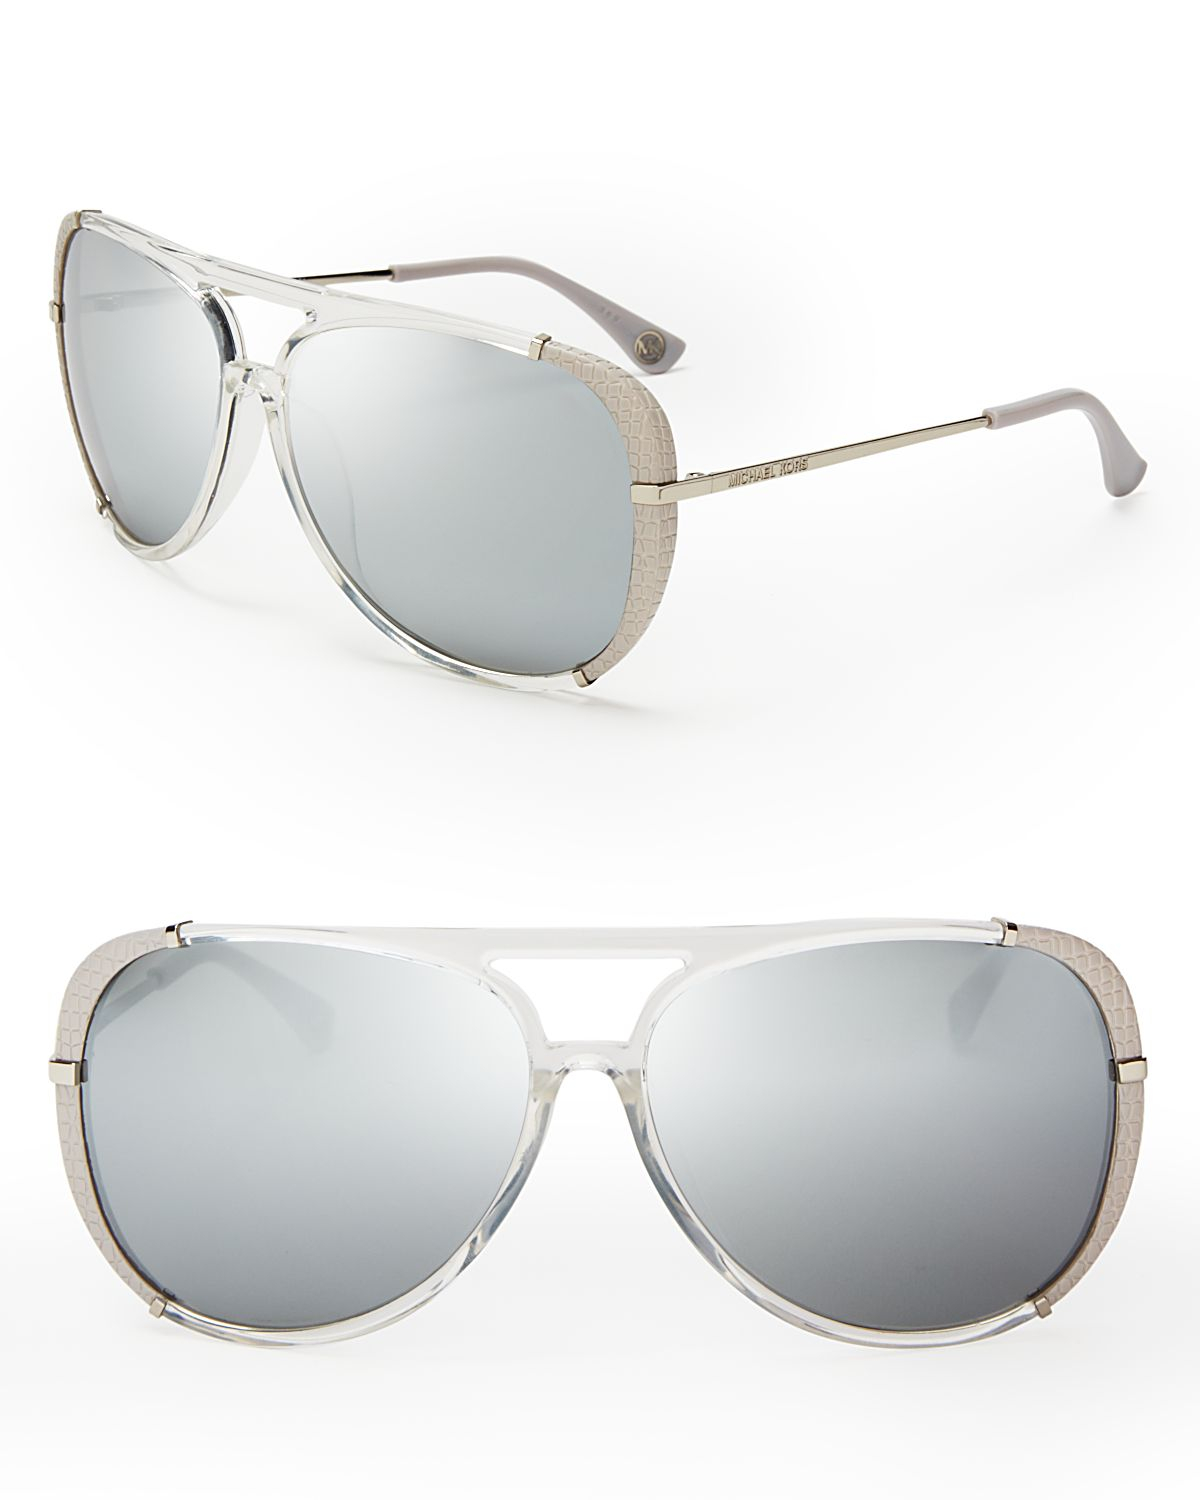 4367e7233abb Michael Kors Julia Aviator Sunglasses in Metallic - Lyst